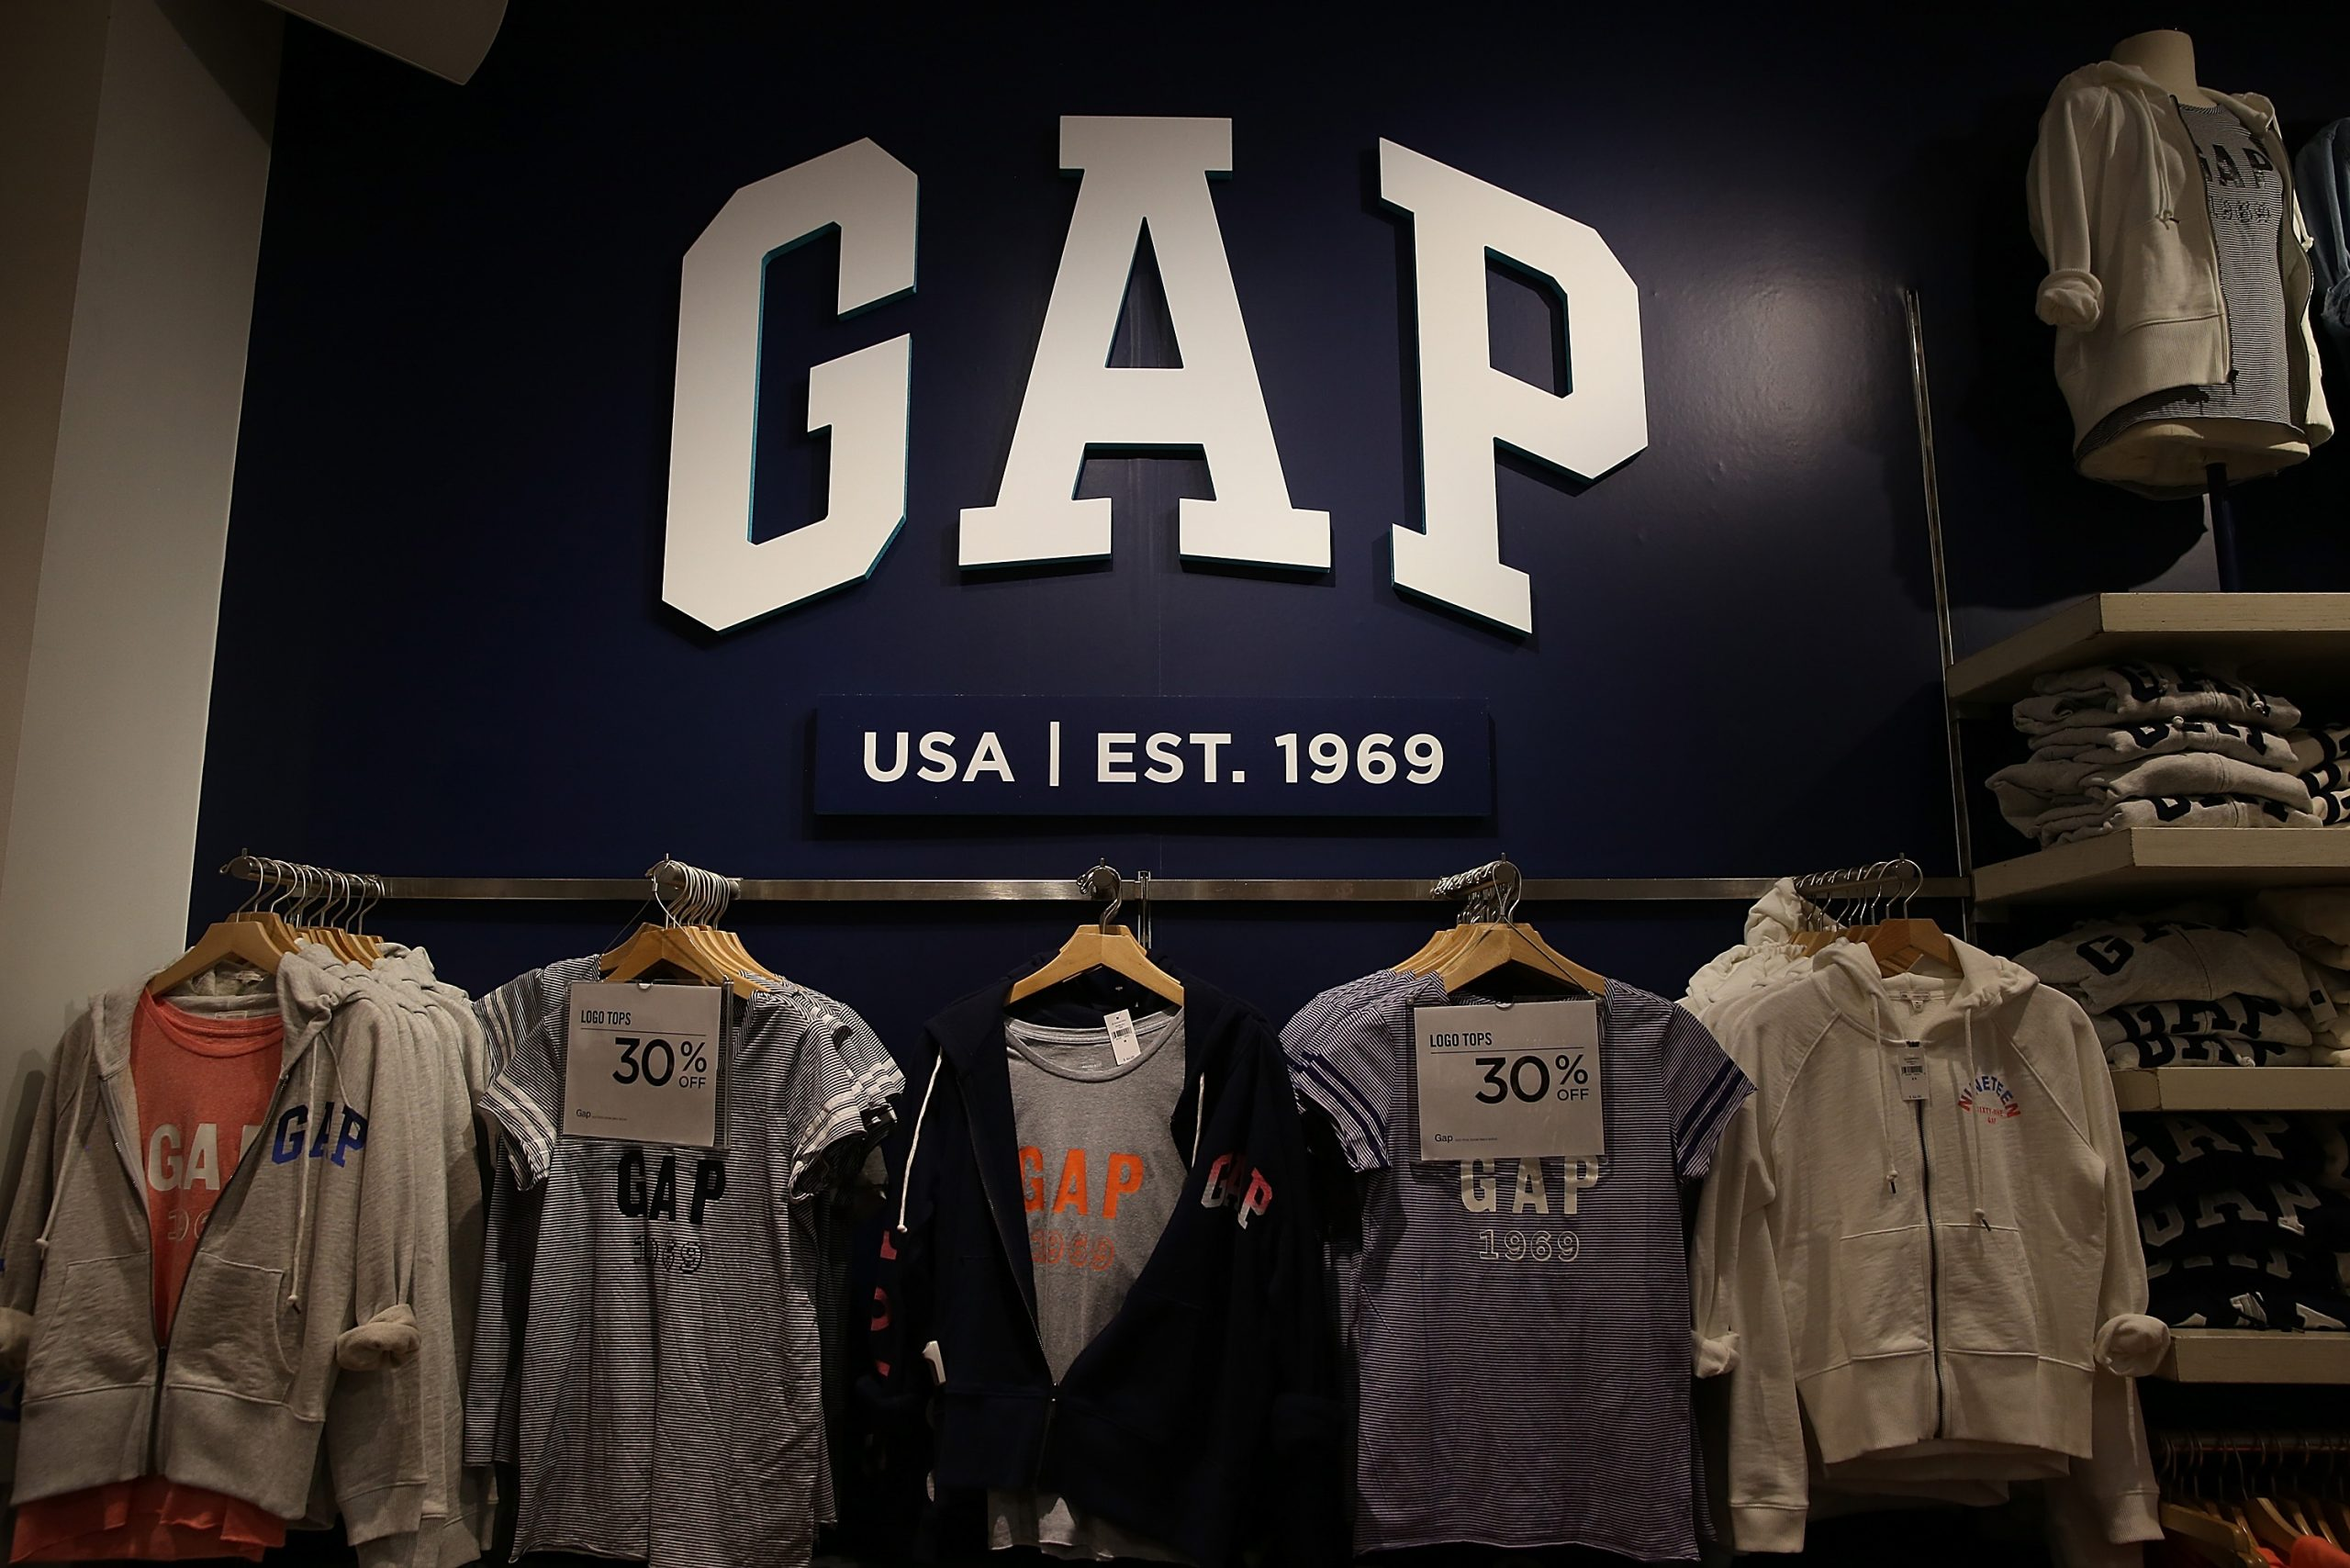 Top GAP Outfits for Men and Women